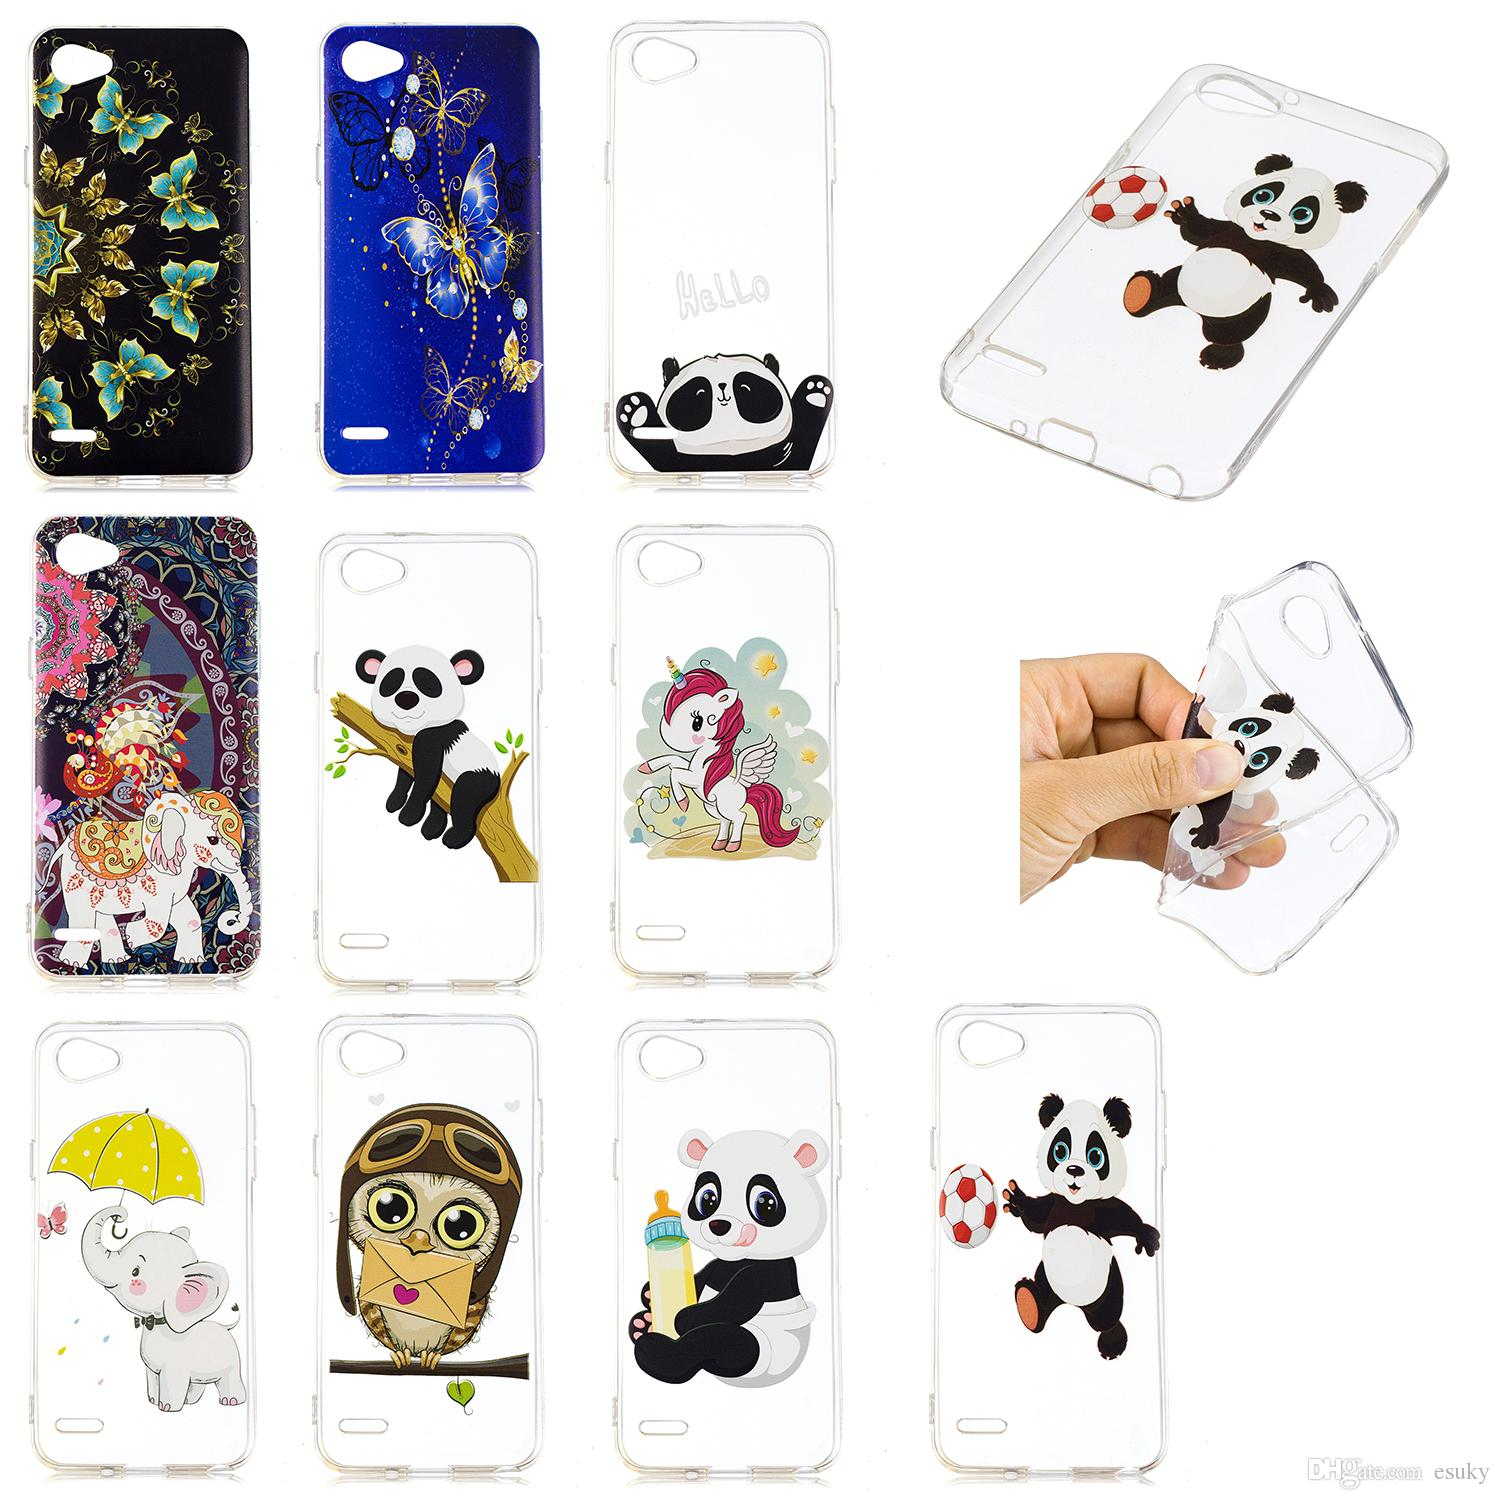 Custodia rigida in TPU per LG Q6 Slim Fit Custodia per panda owl elephant butterfly unicorn per LG G6 MINI Cover